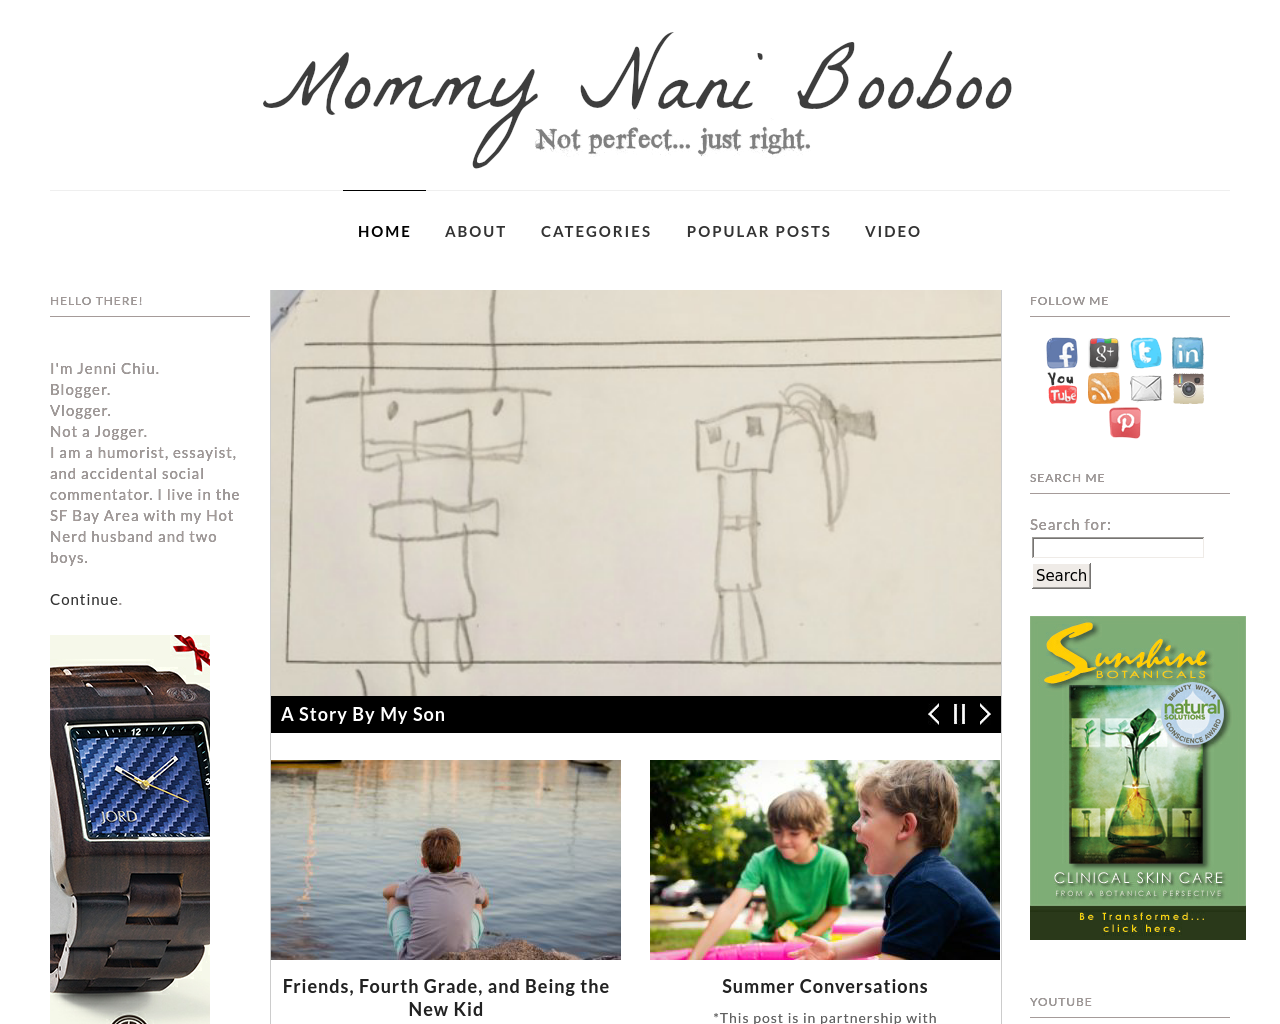 Mommy-Nani-Booboo-Advertising-Reviews-Pricing